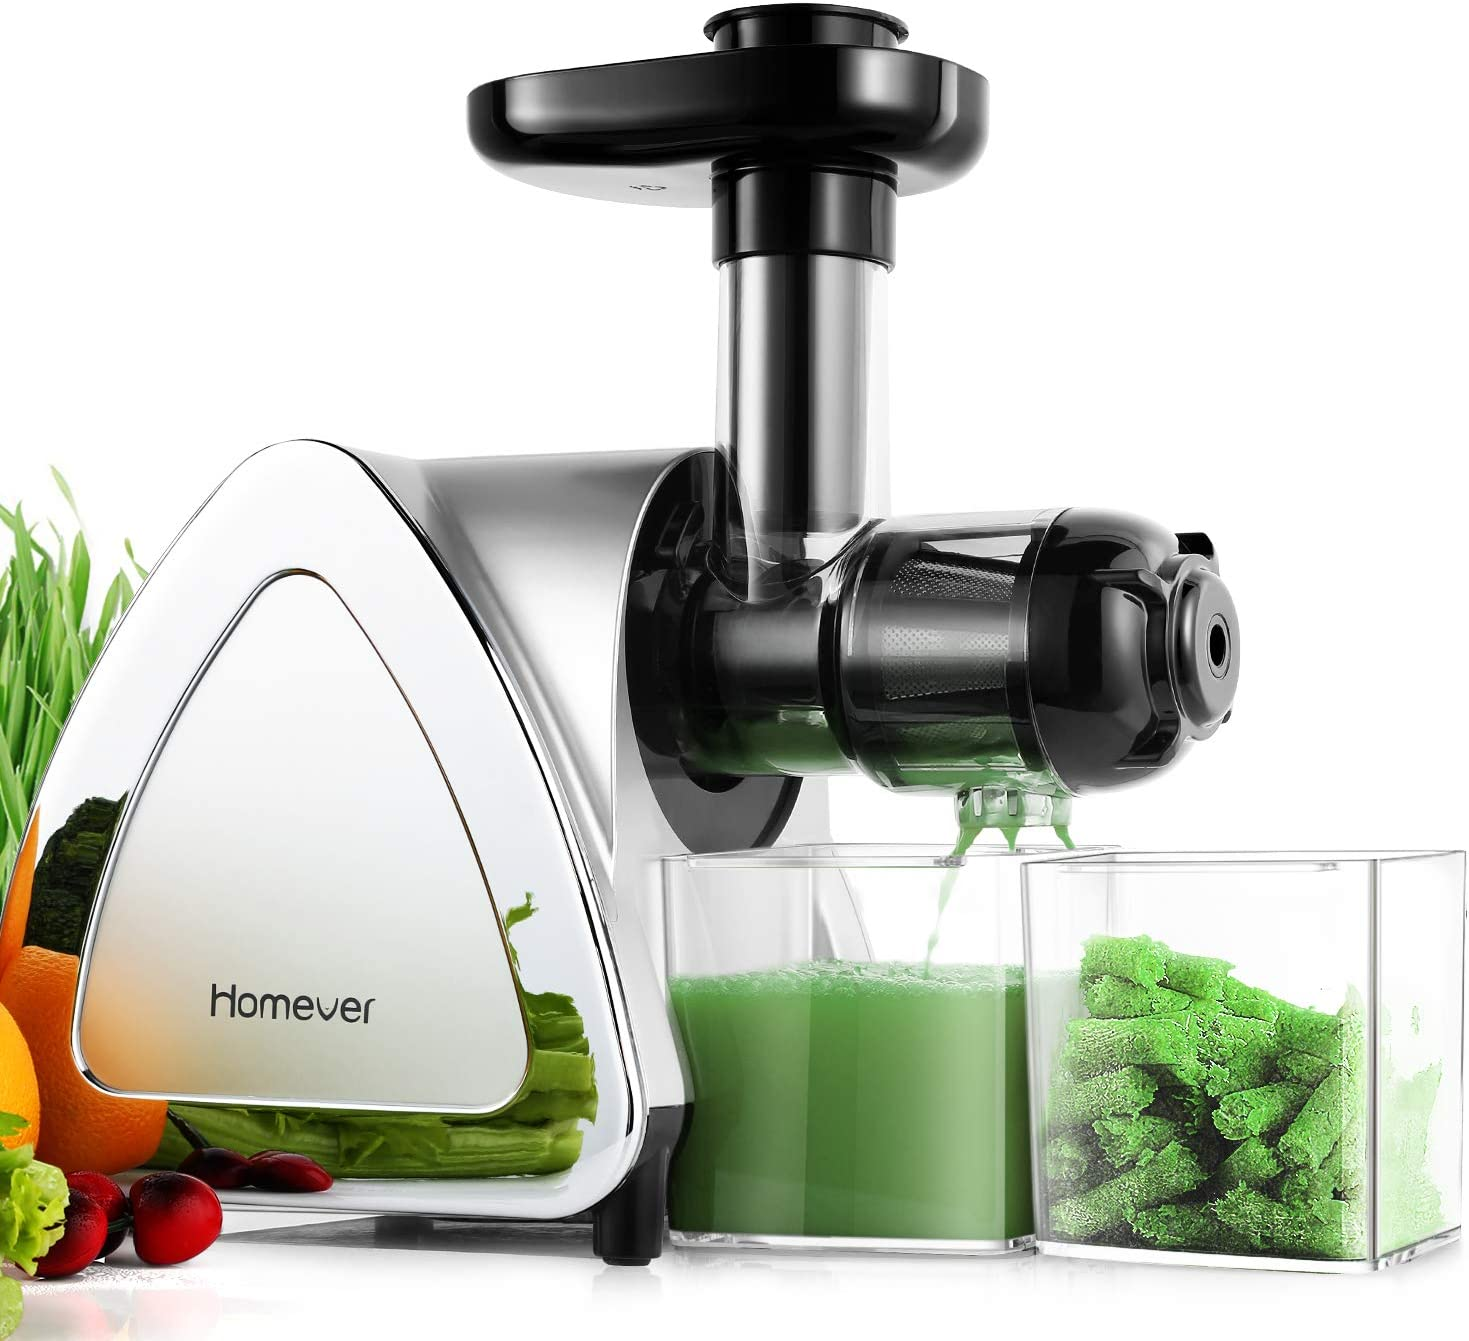 Homever Low Speed Masticating Juicer